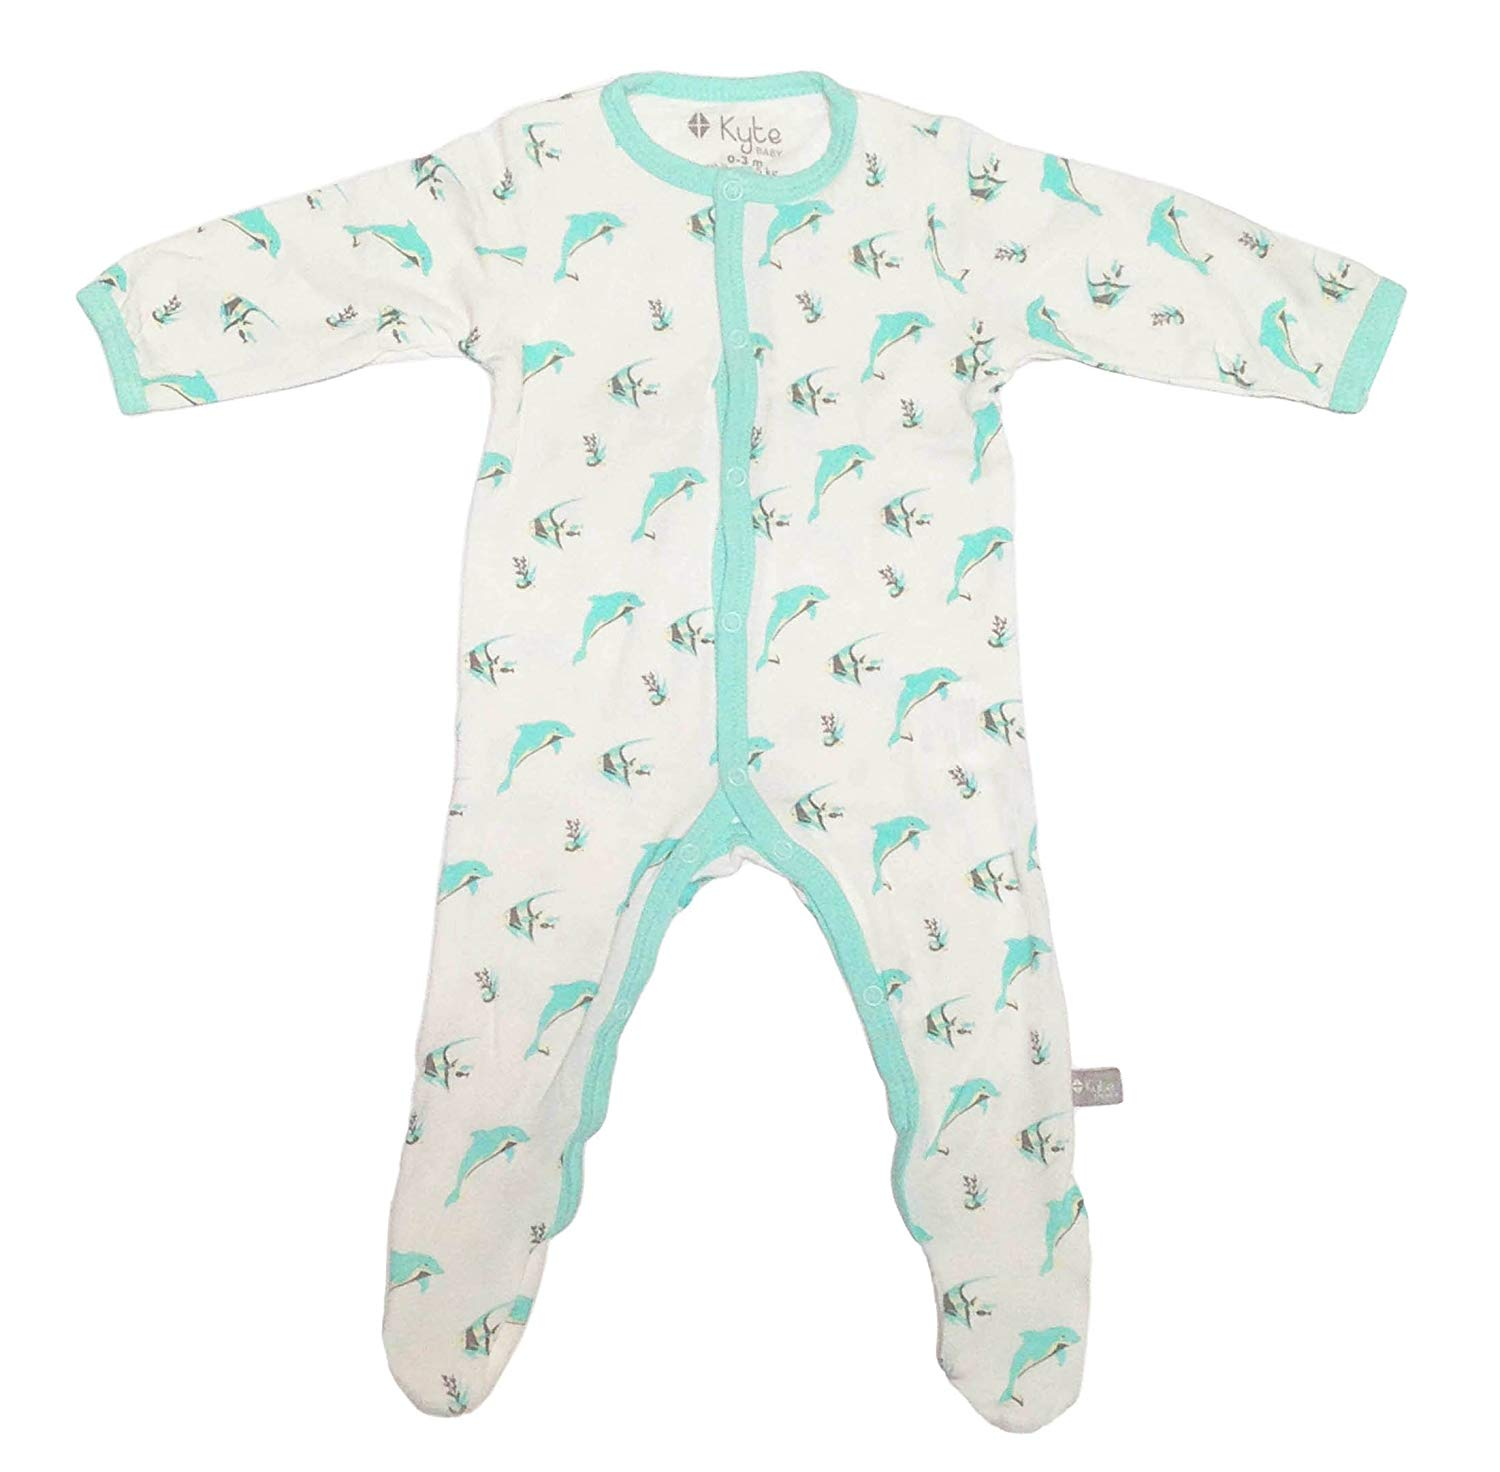 0-24 Months Baby Footed Pajamas Made of Soft Organic Bamboo Material Solid Colors KYTE BABY Footies